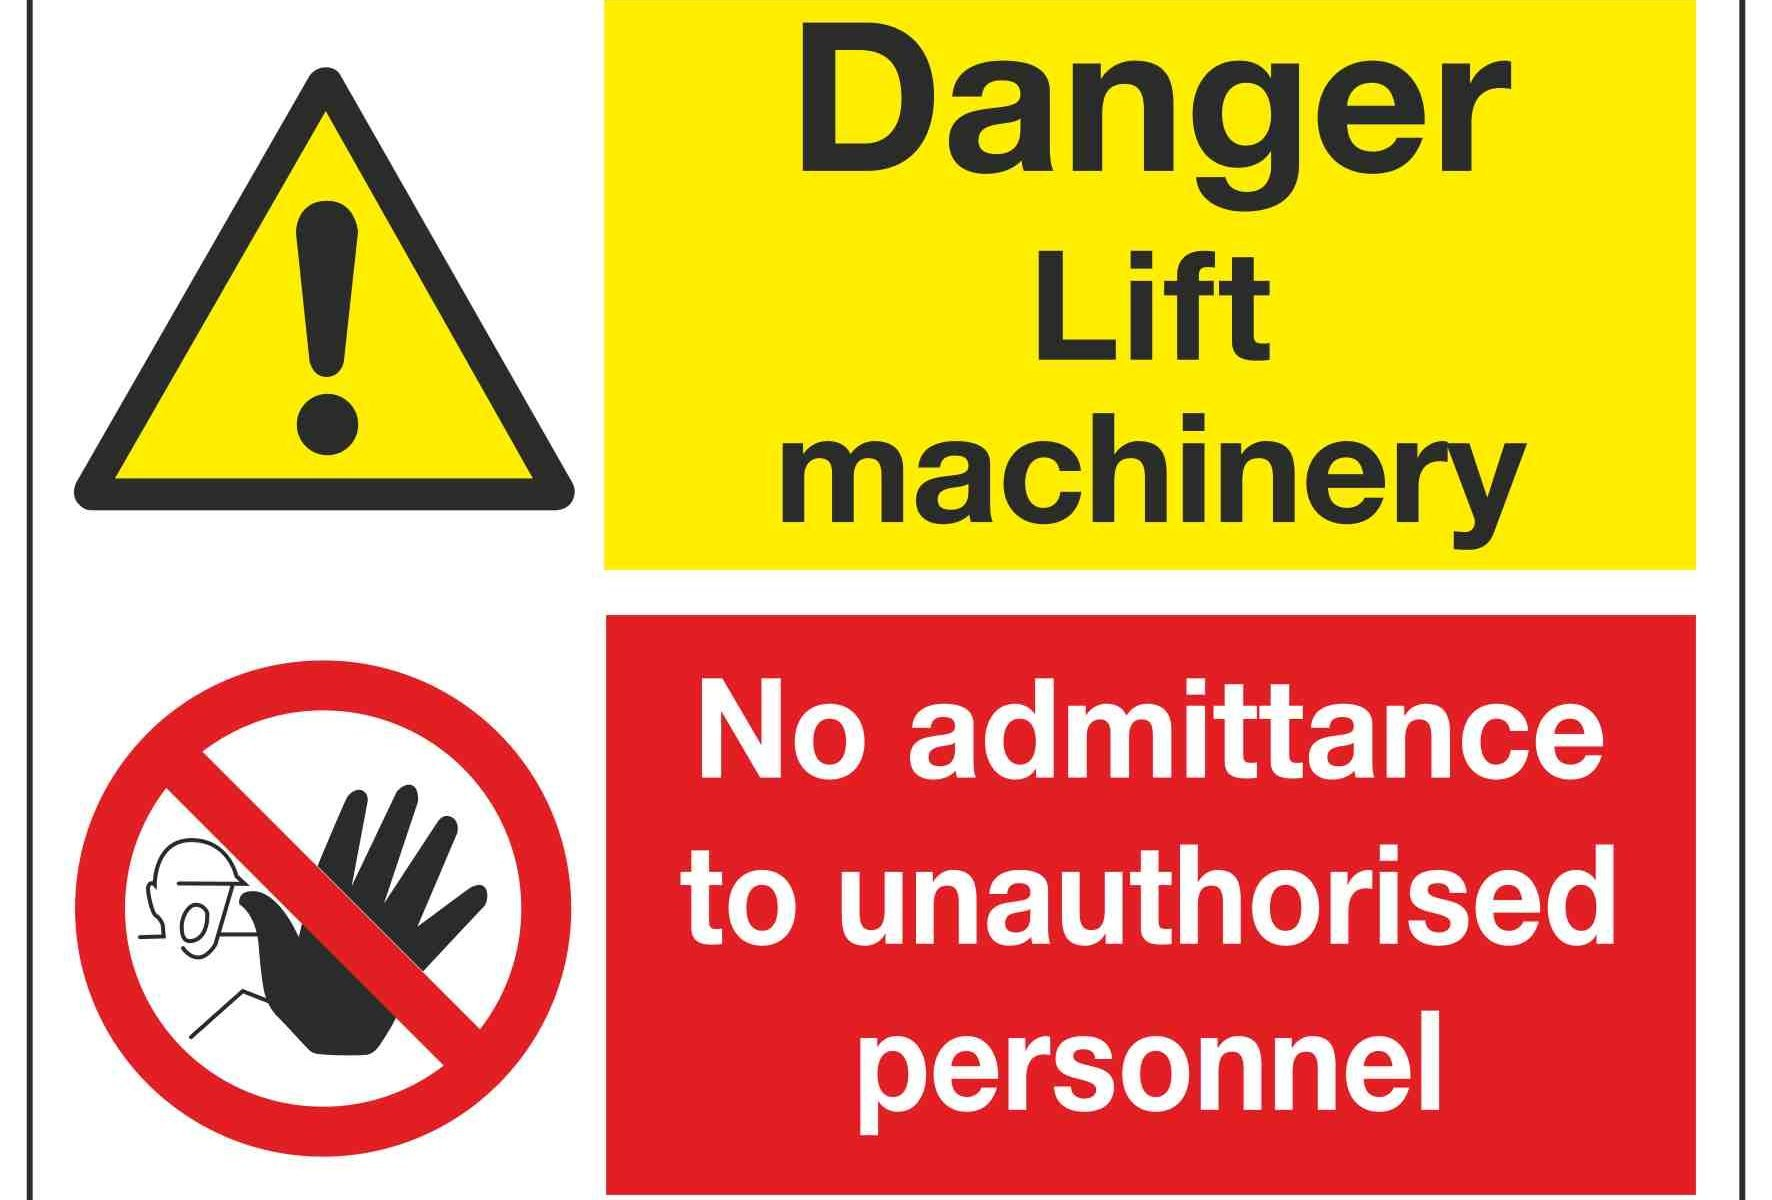 Danger lift machinery No admittance to unauthorised personnel